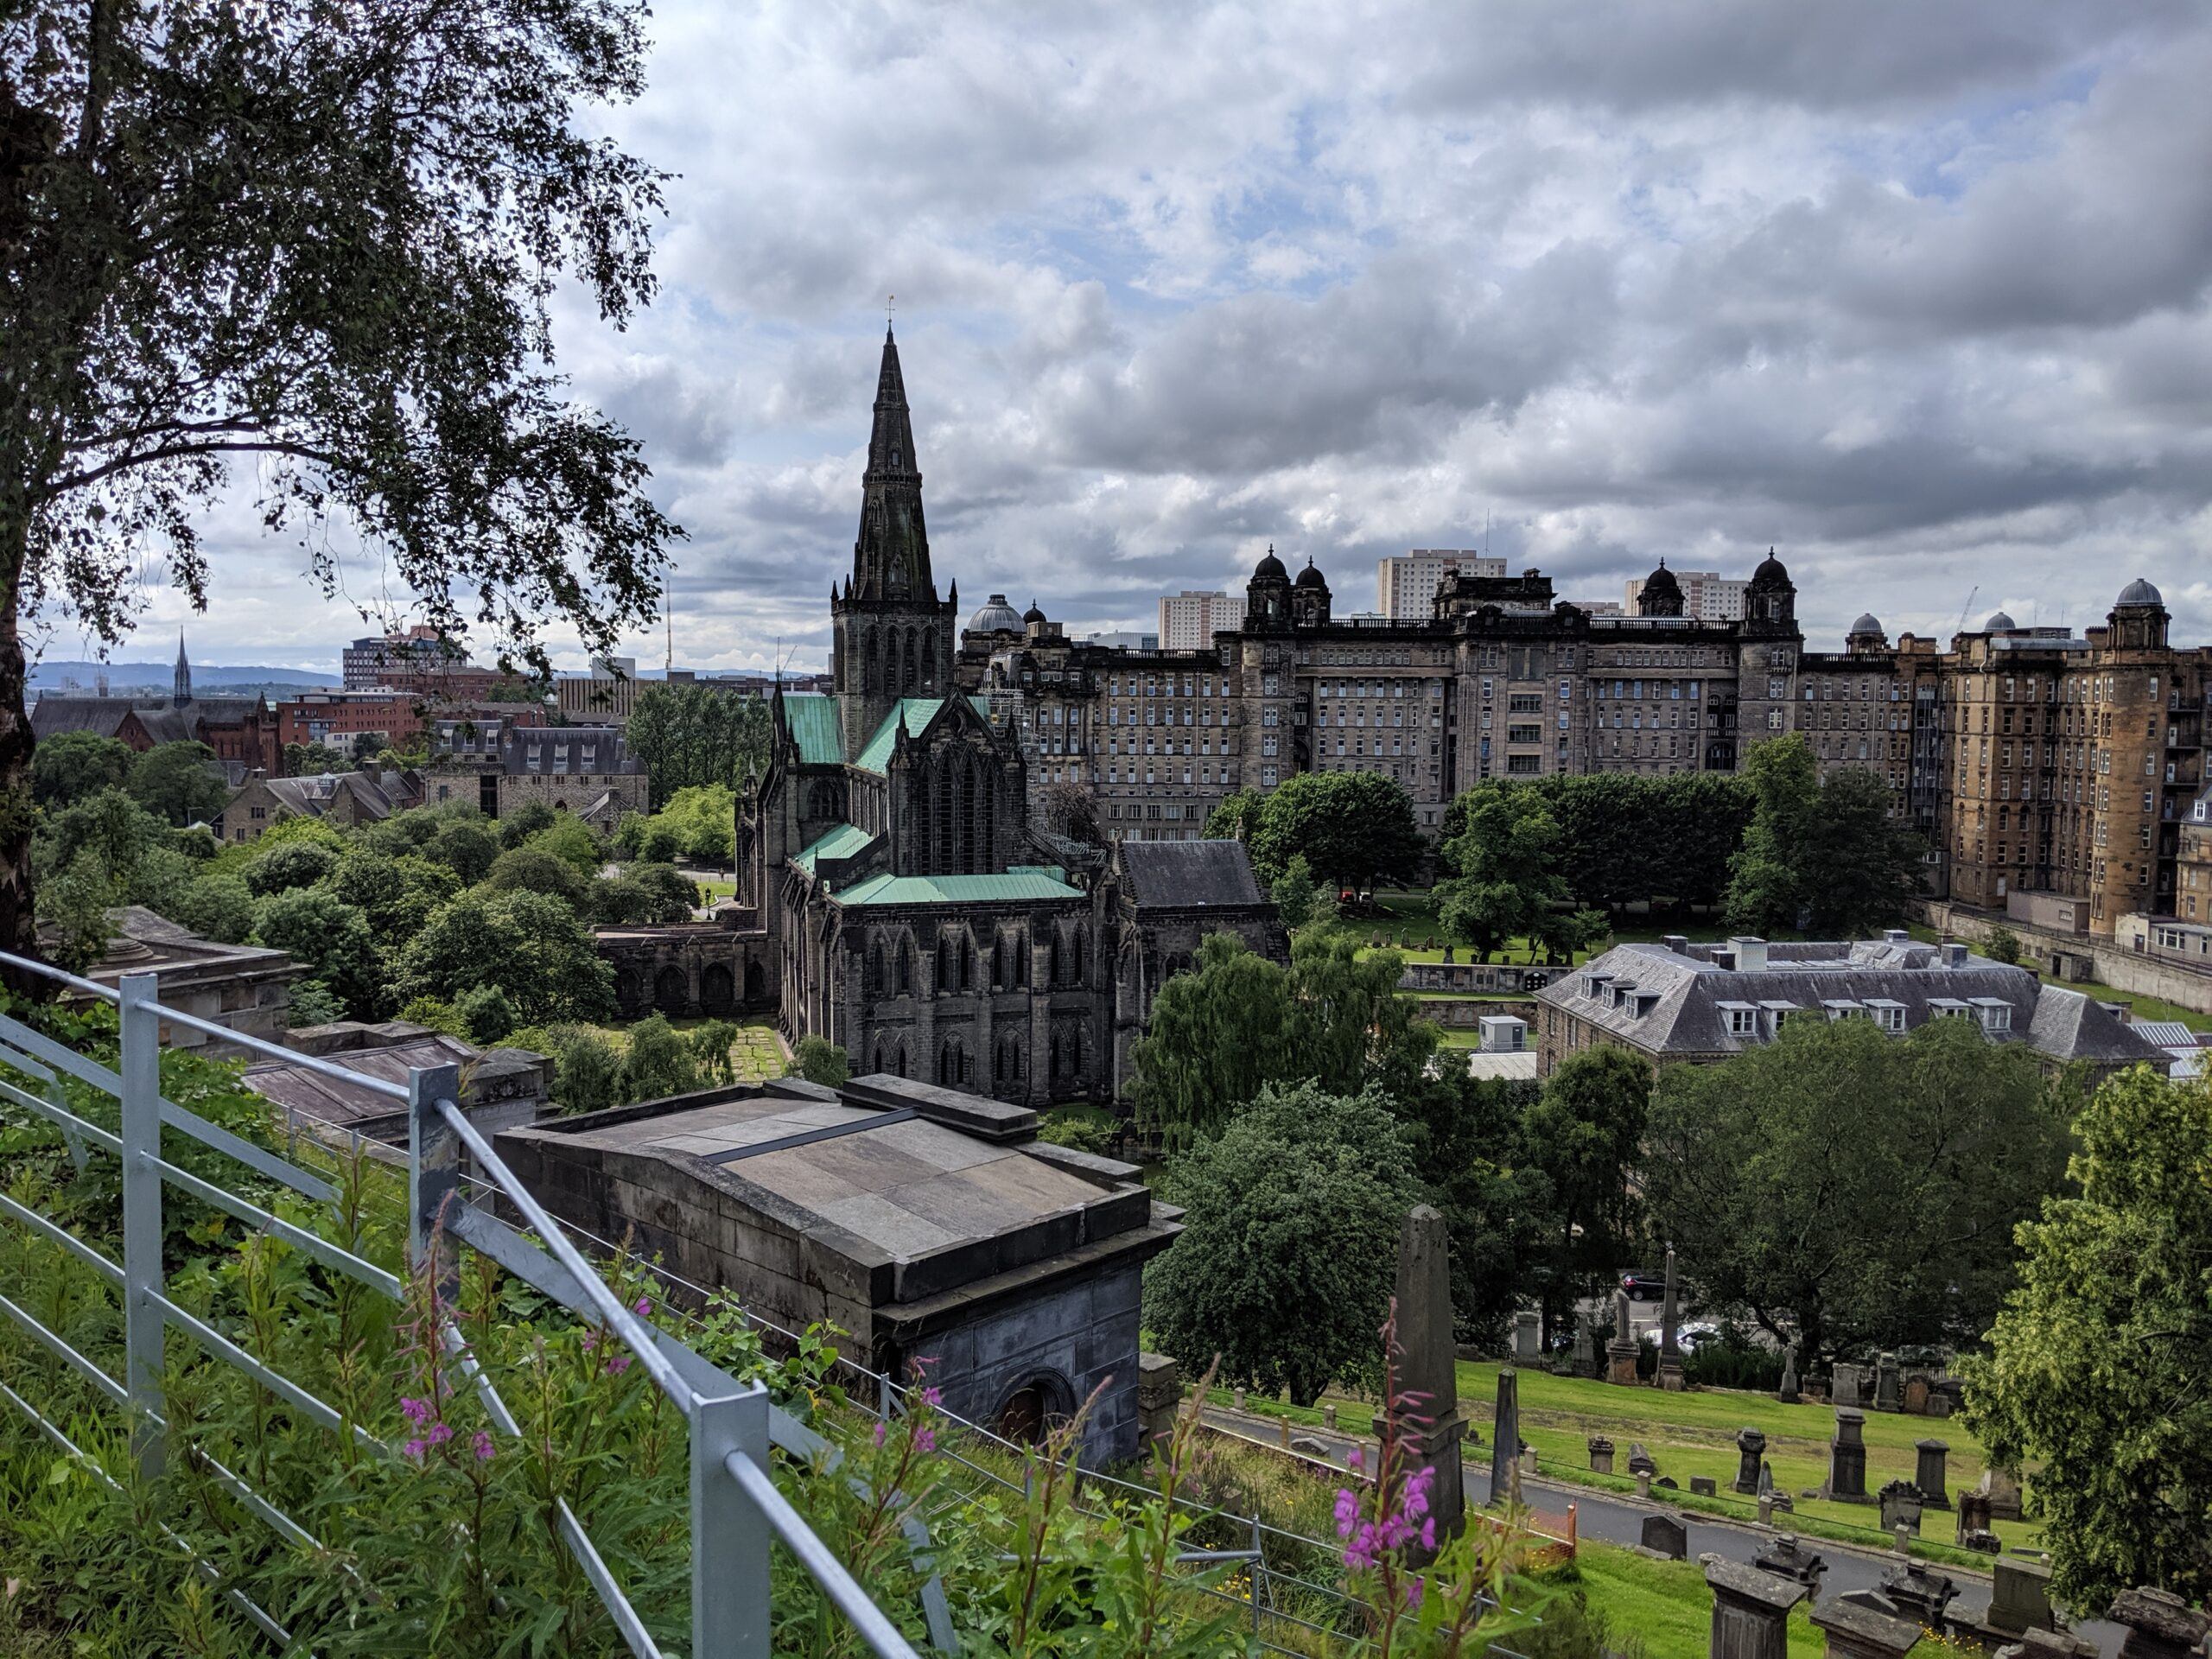 A view of Glasgow Cathedral and the domed Royal Infirmary from the hillside behind the cathedral.